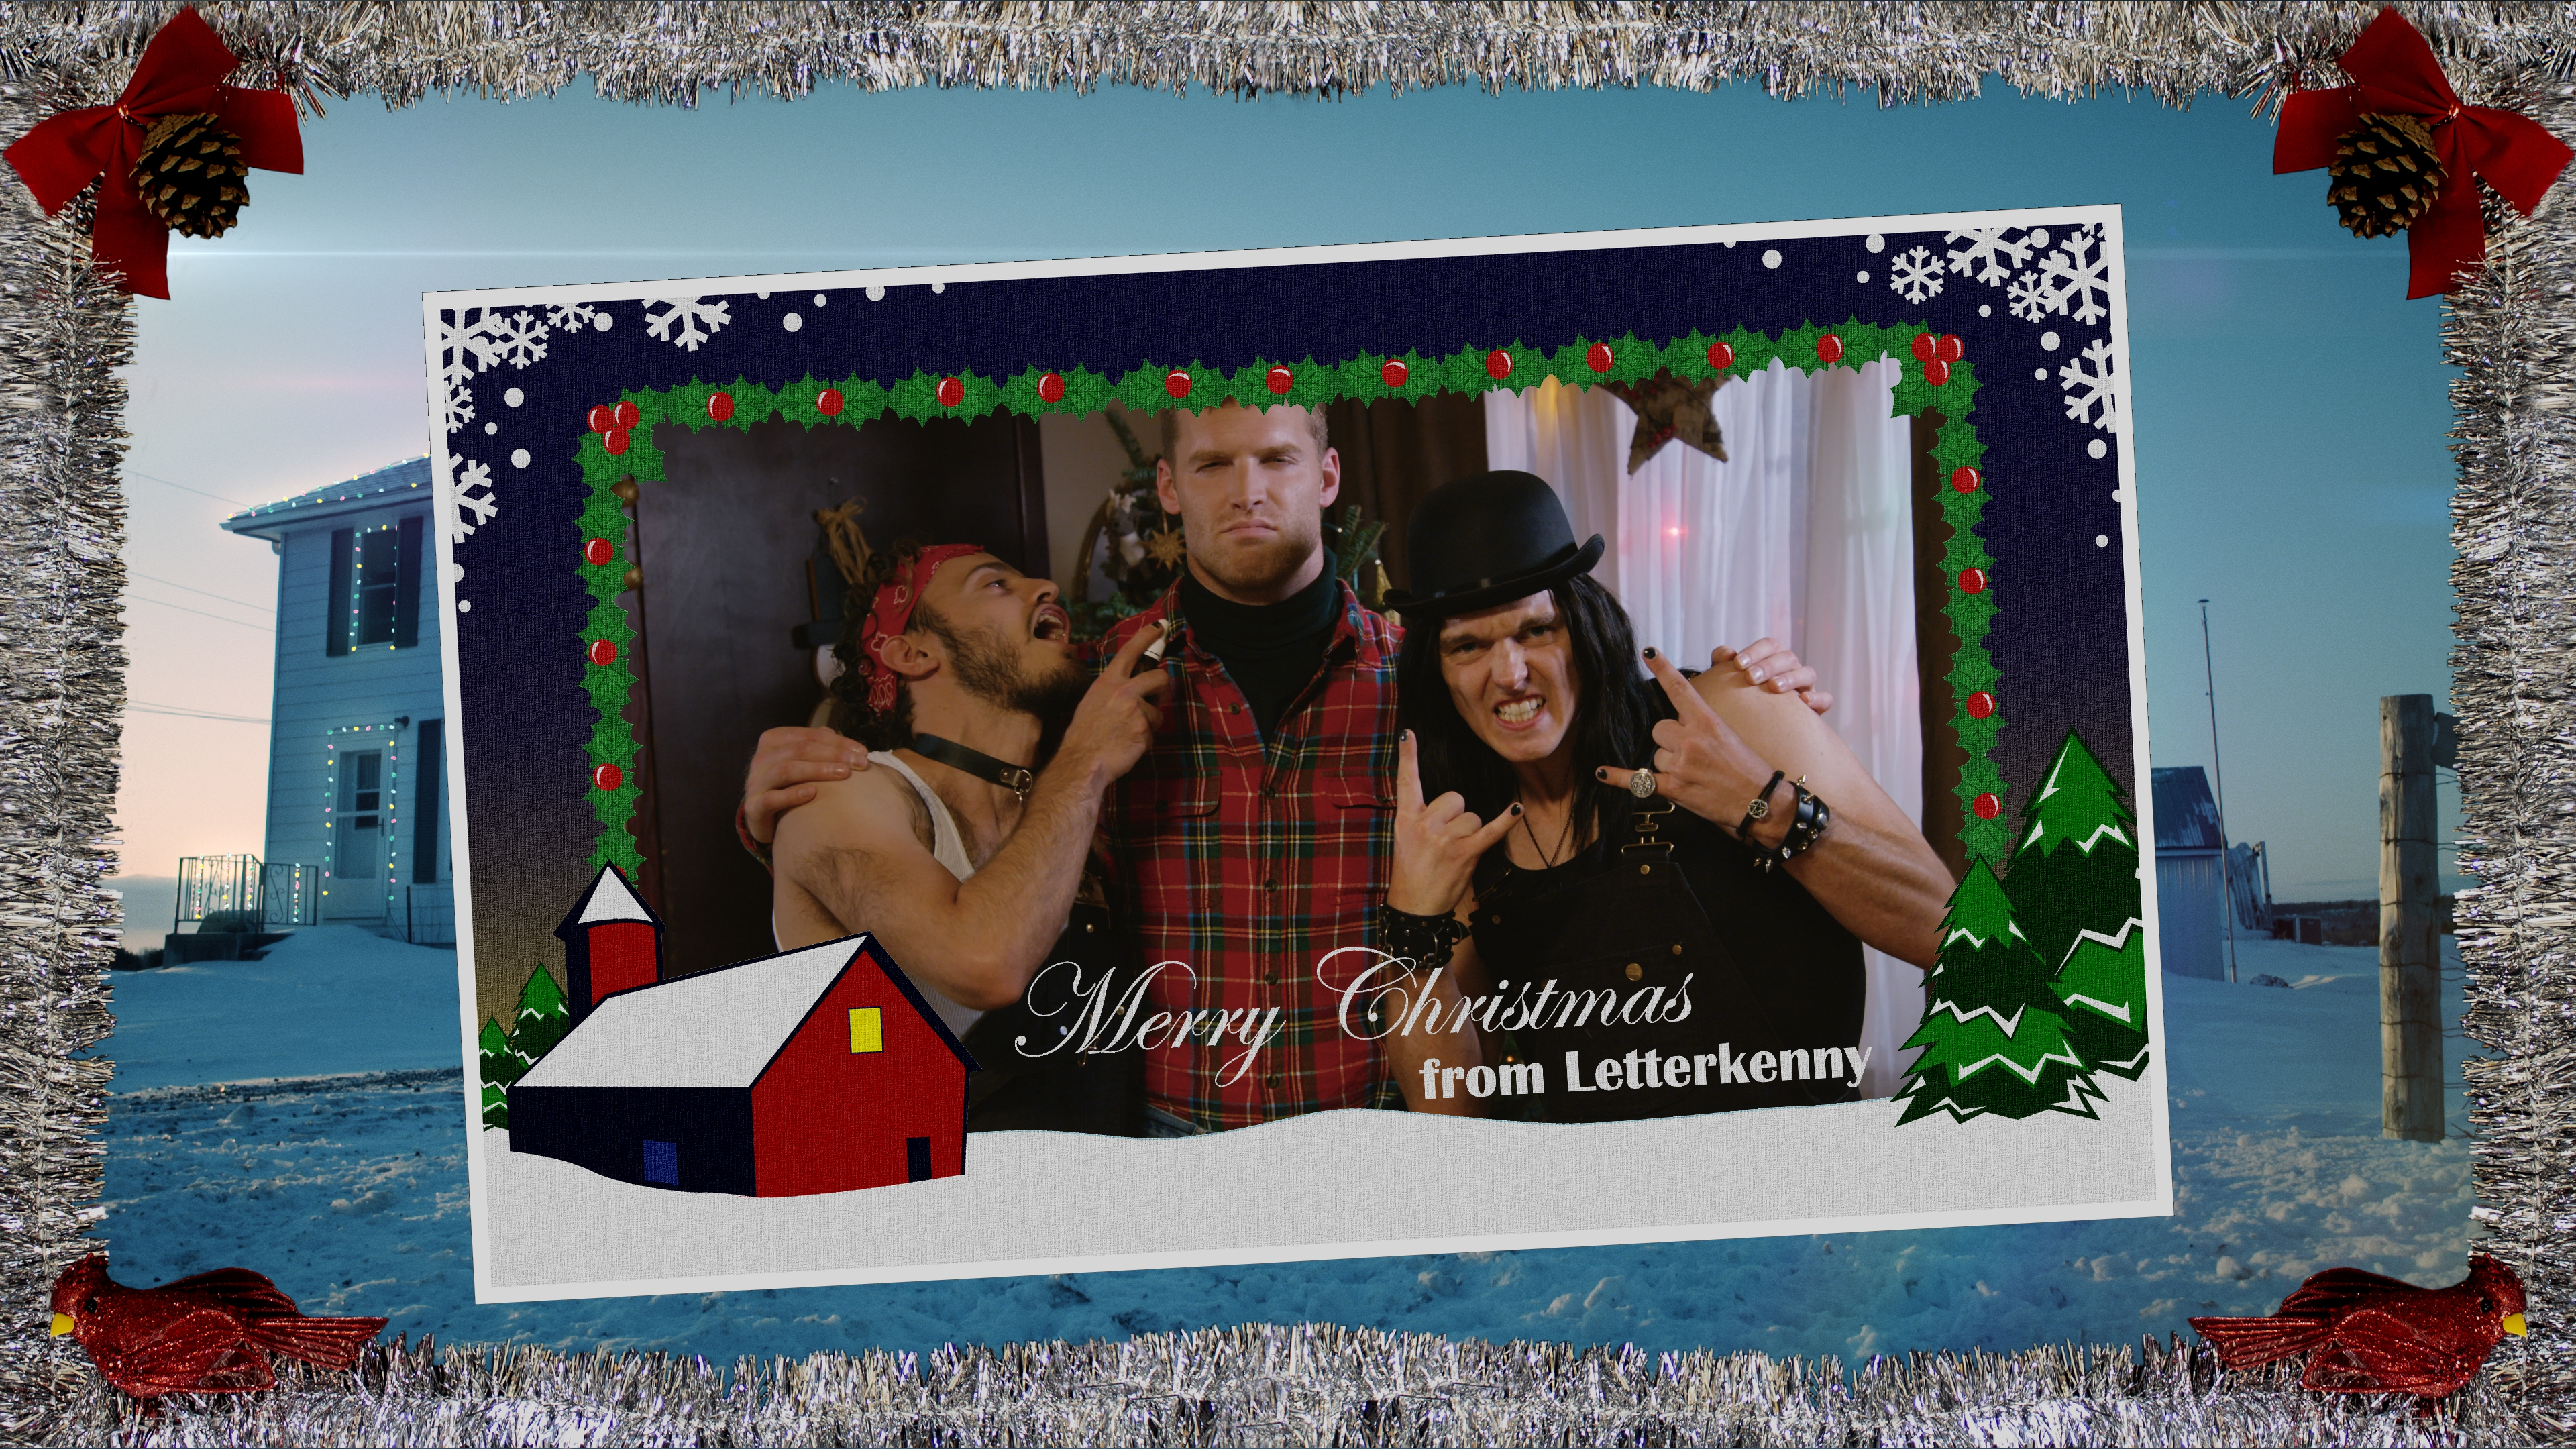 Letterkenny Christmas Special 2020 Crave Gifts Viewers with a Whole Mess of LETTERKENNY Including a